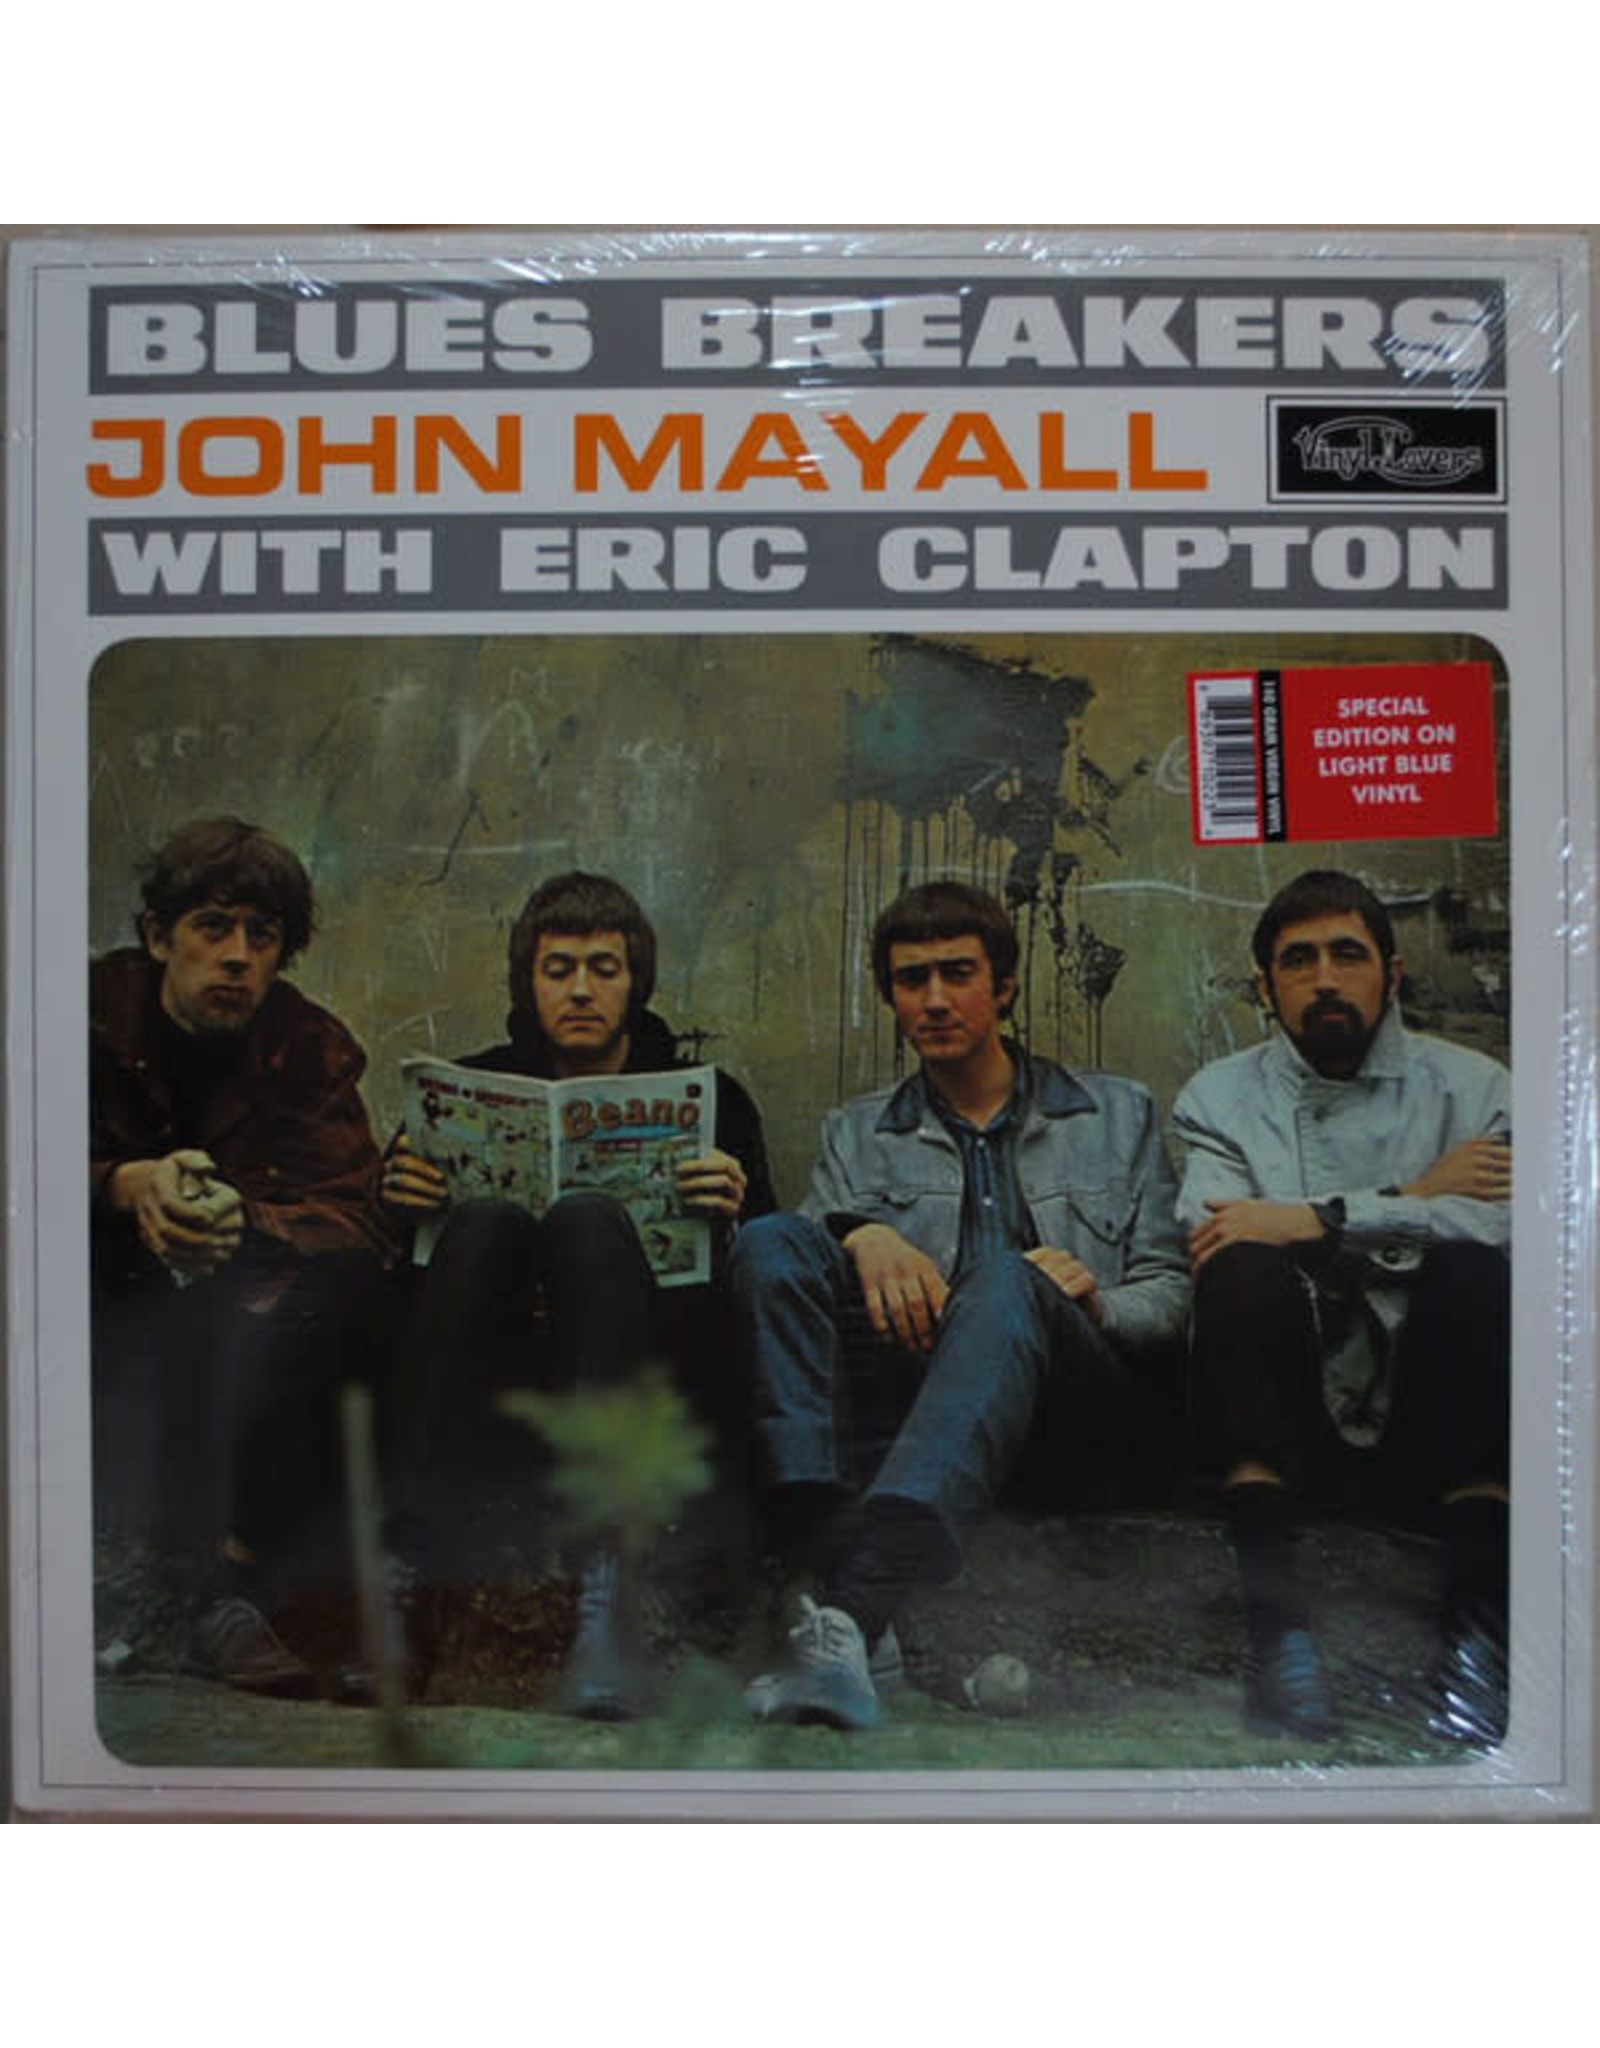 Mayall, John & The Bluesbreakers - Blues Breakers With Eric Clapton LP